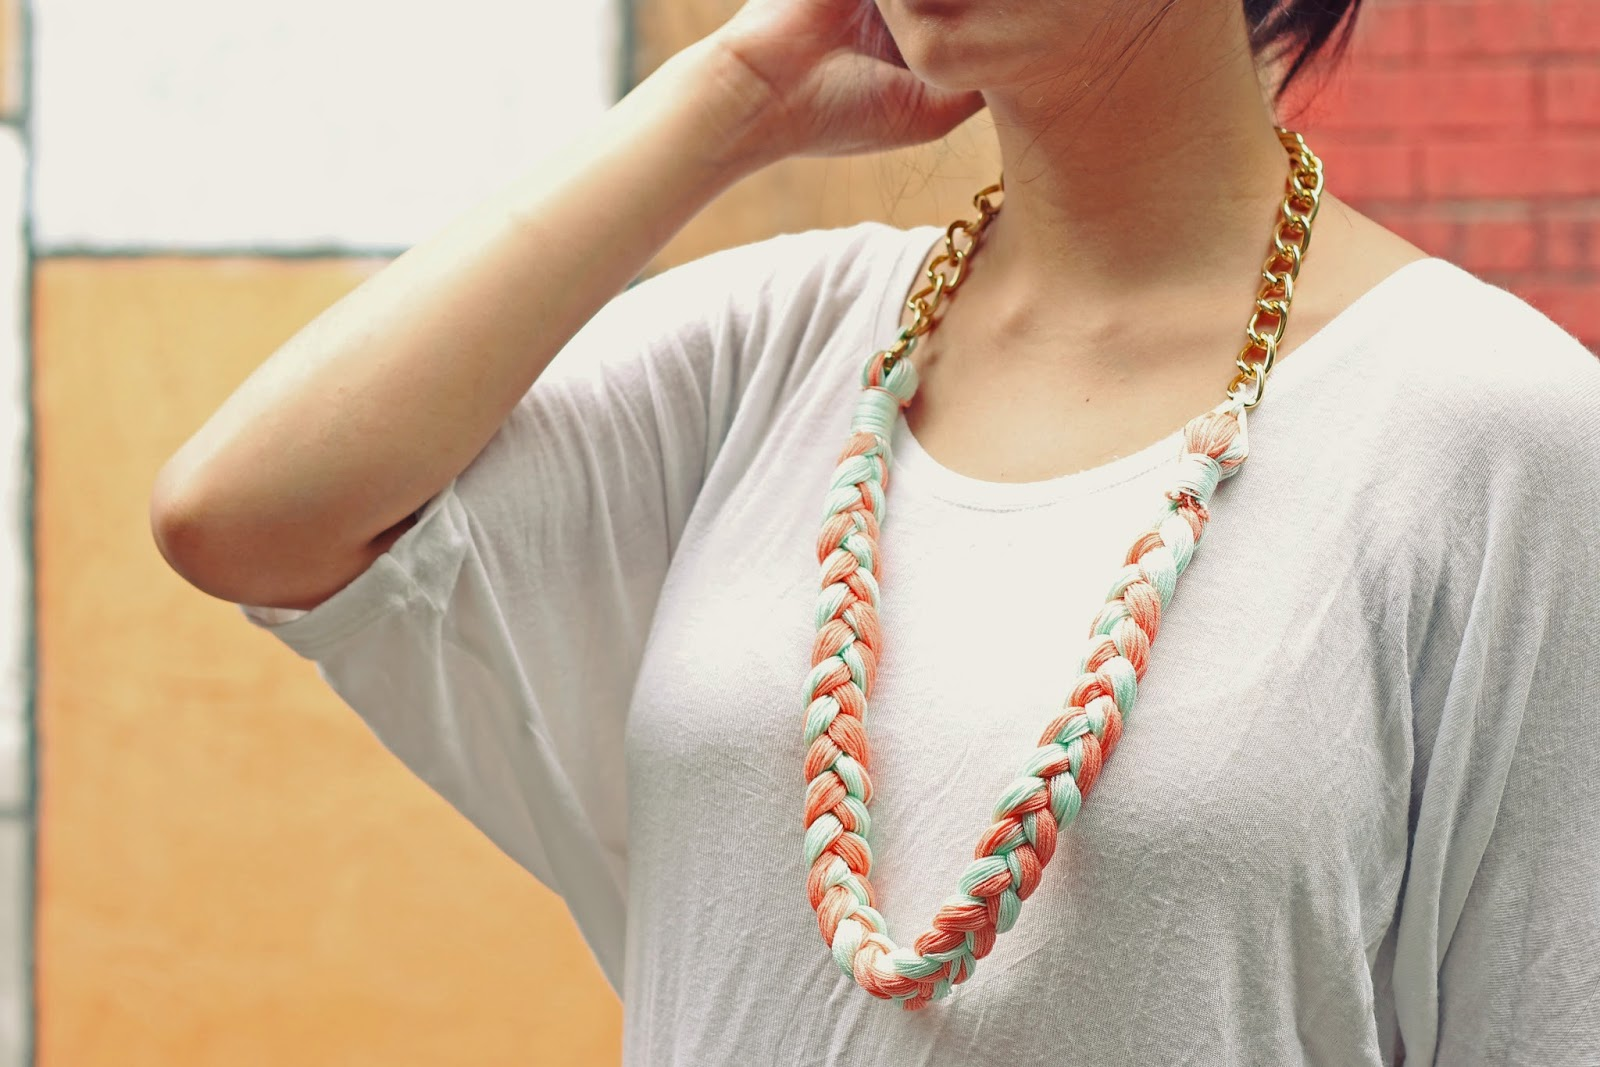 Summer fling: DIY two-tone pleated necklace